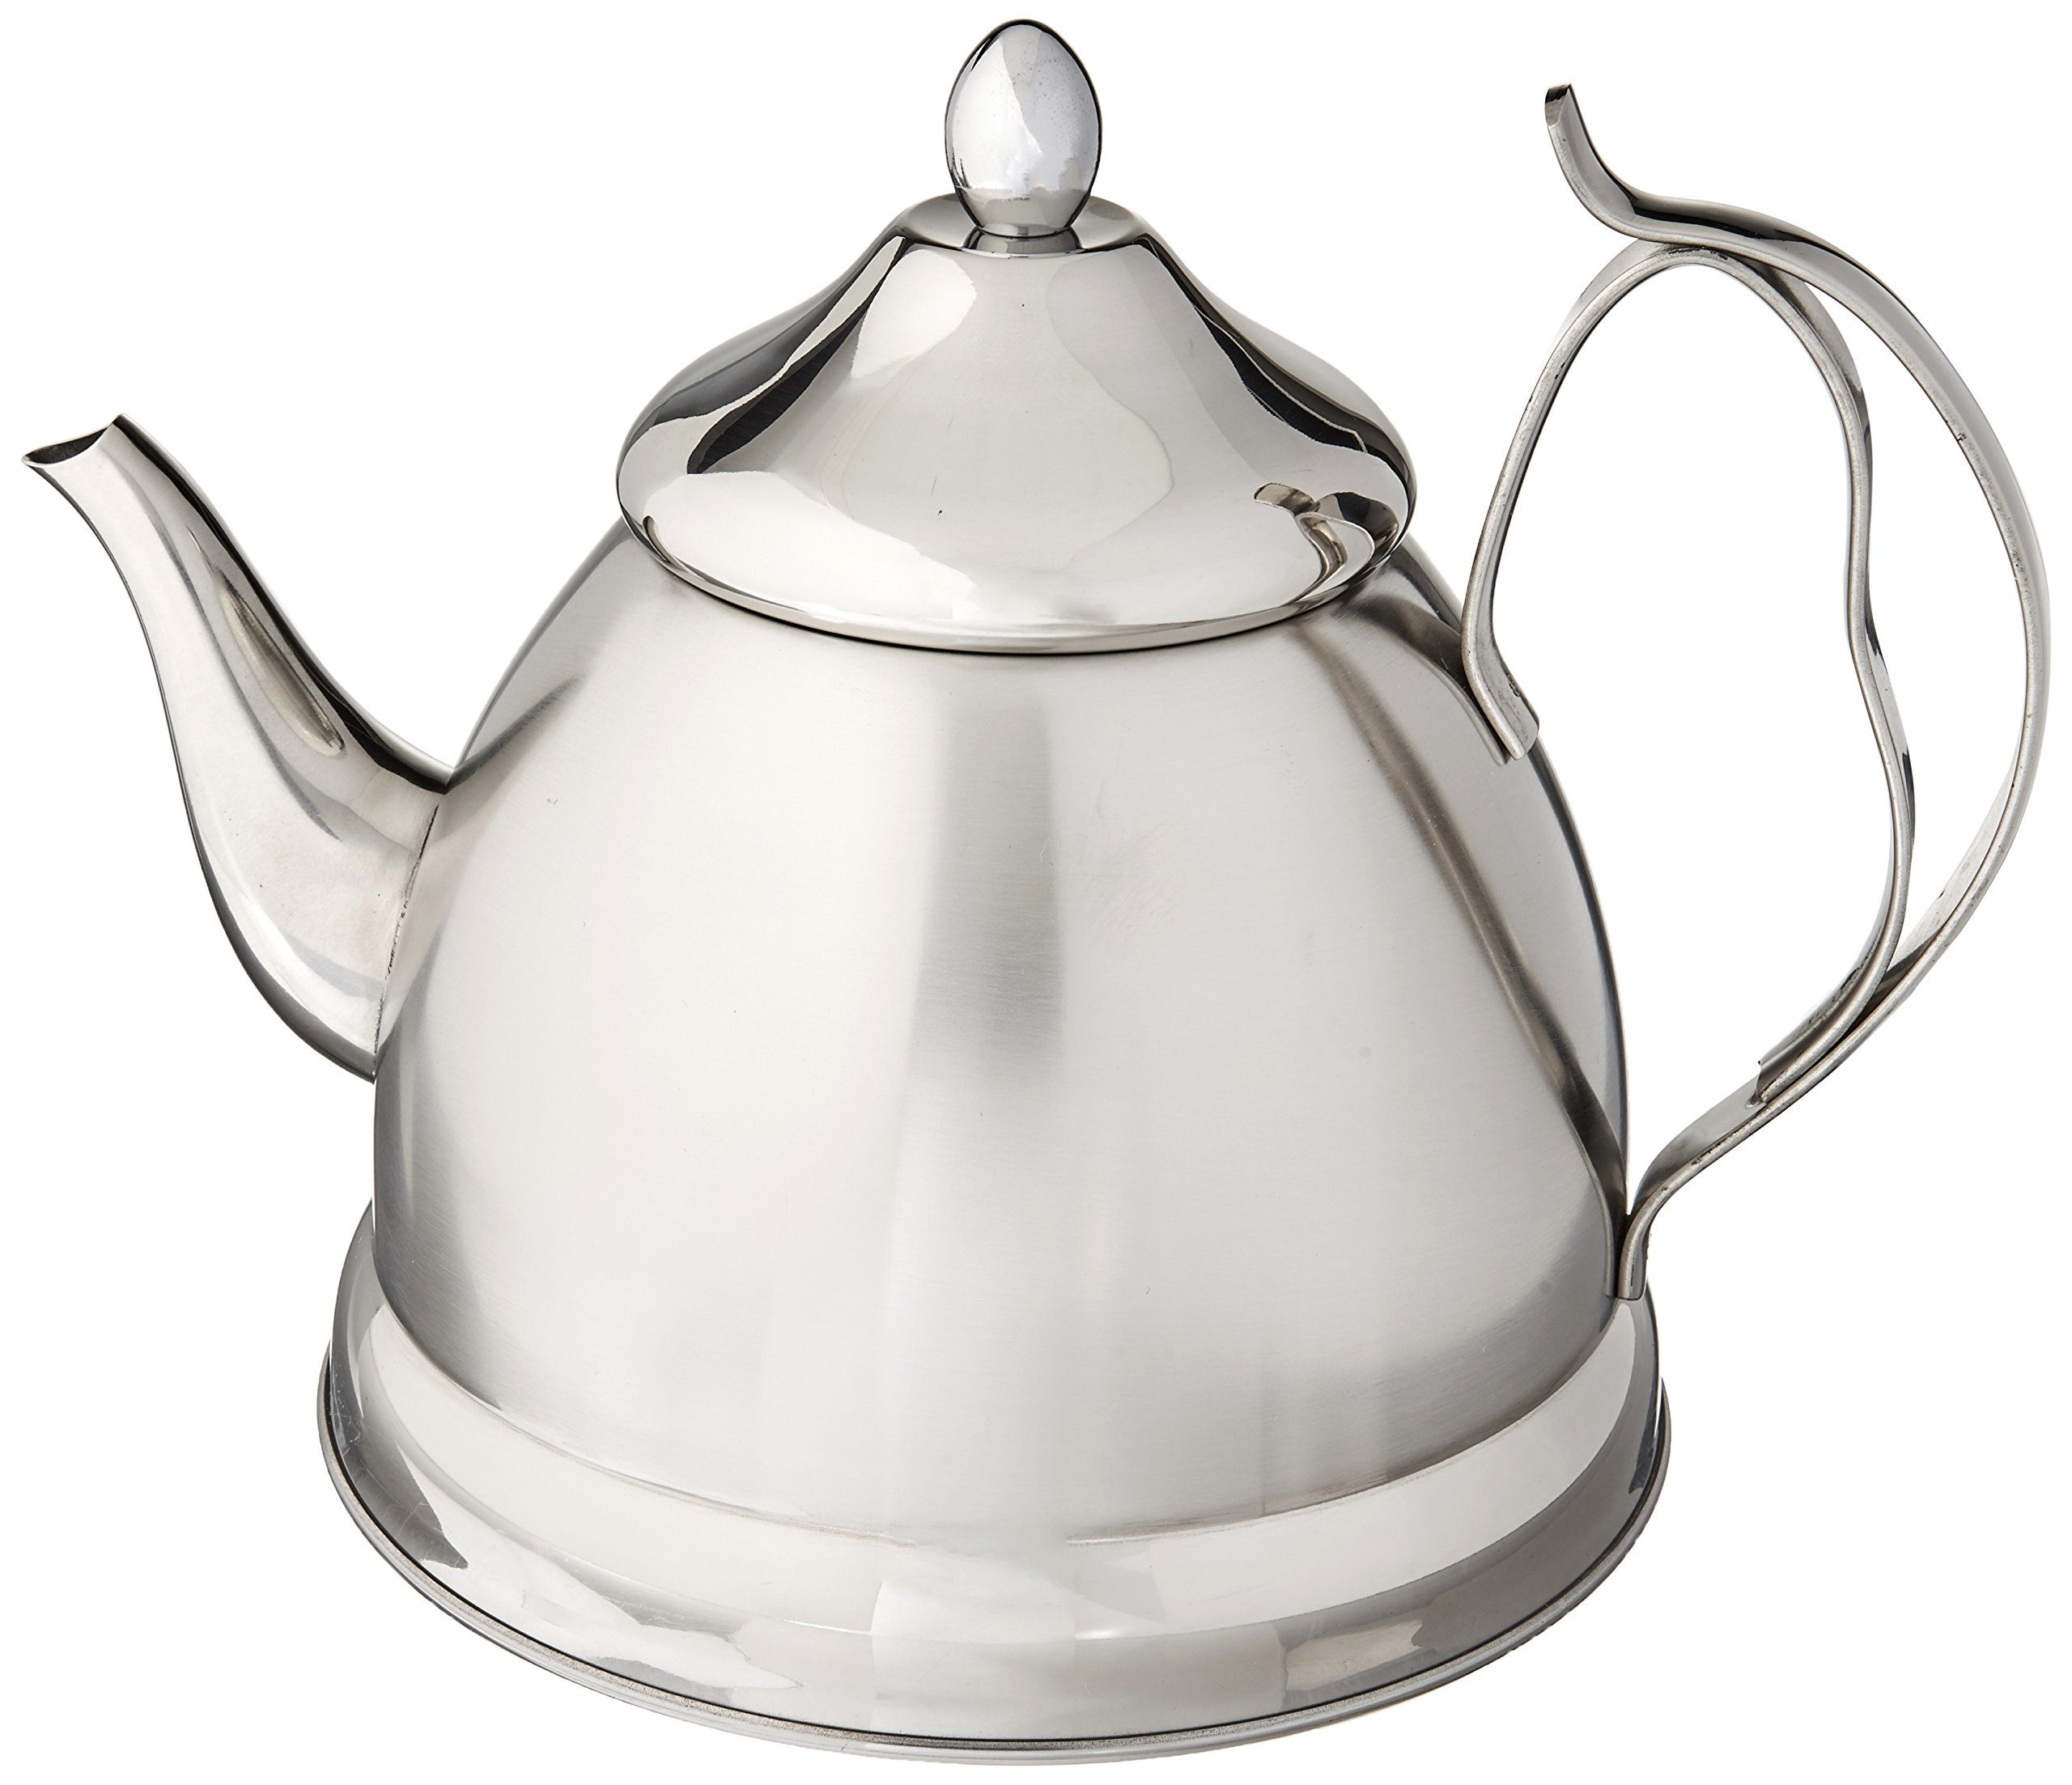 Creative Home Nobili-Tea 2.0 Qt. Stainless Steel Tea Kettle with Removable Infuser Basket, Brushed Body Finish